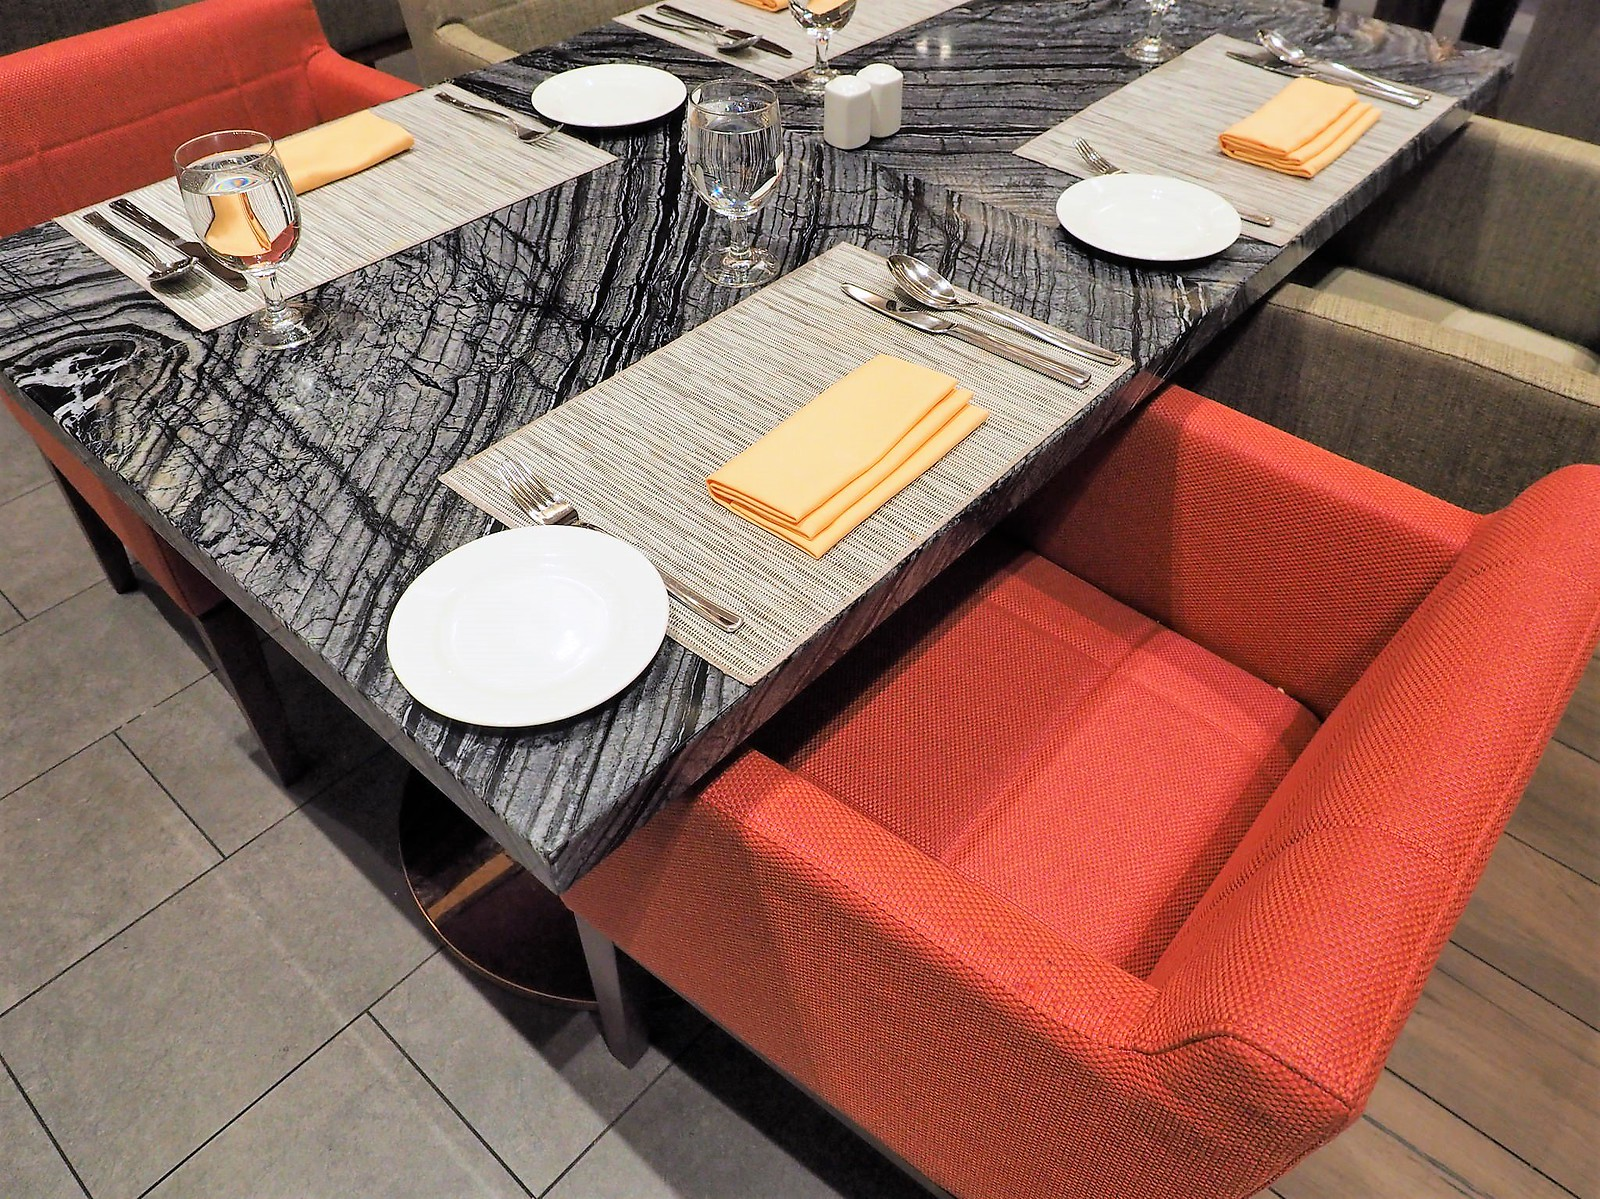 Comfortable sofa and dining table